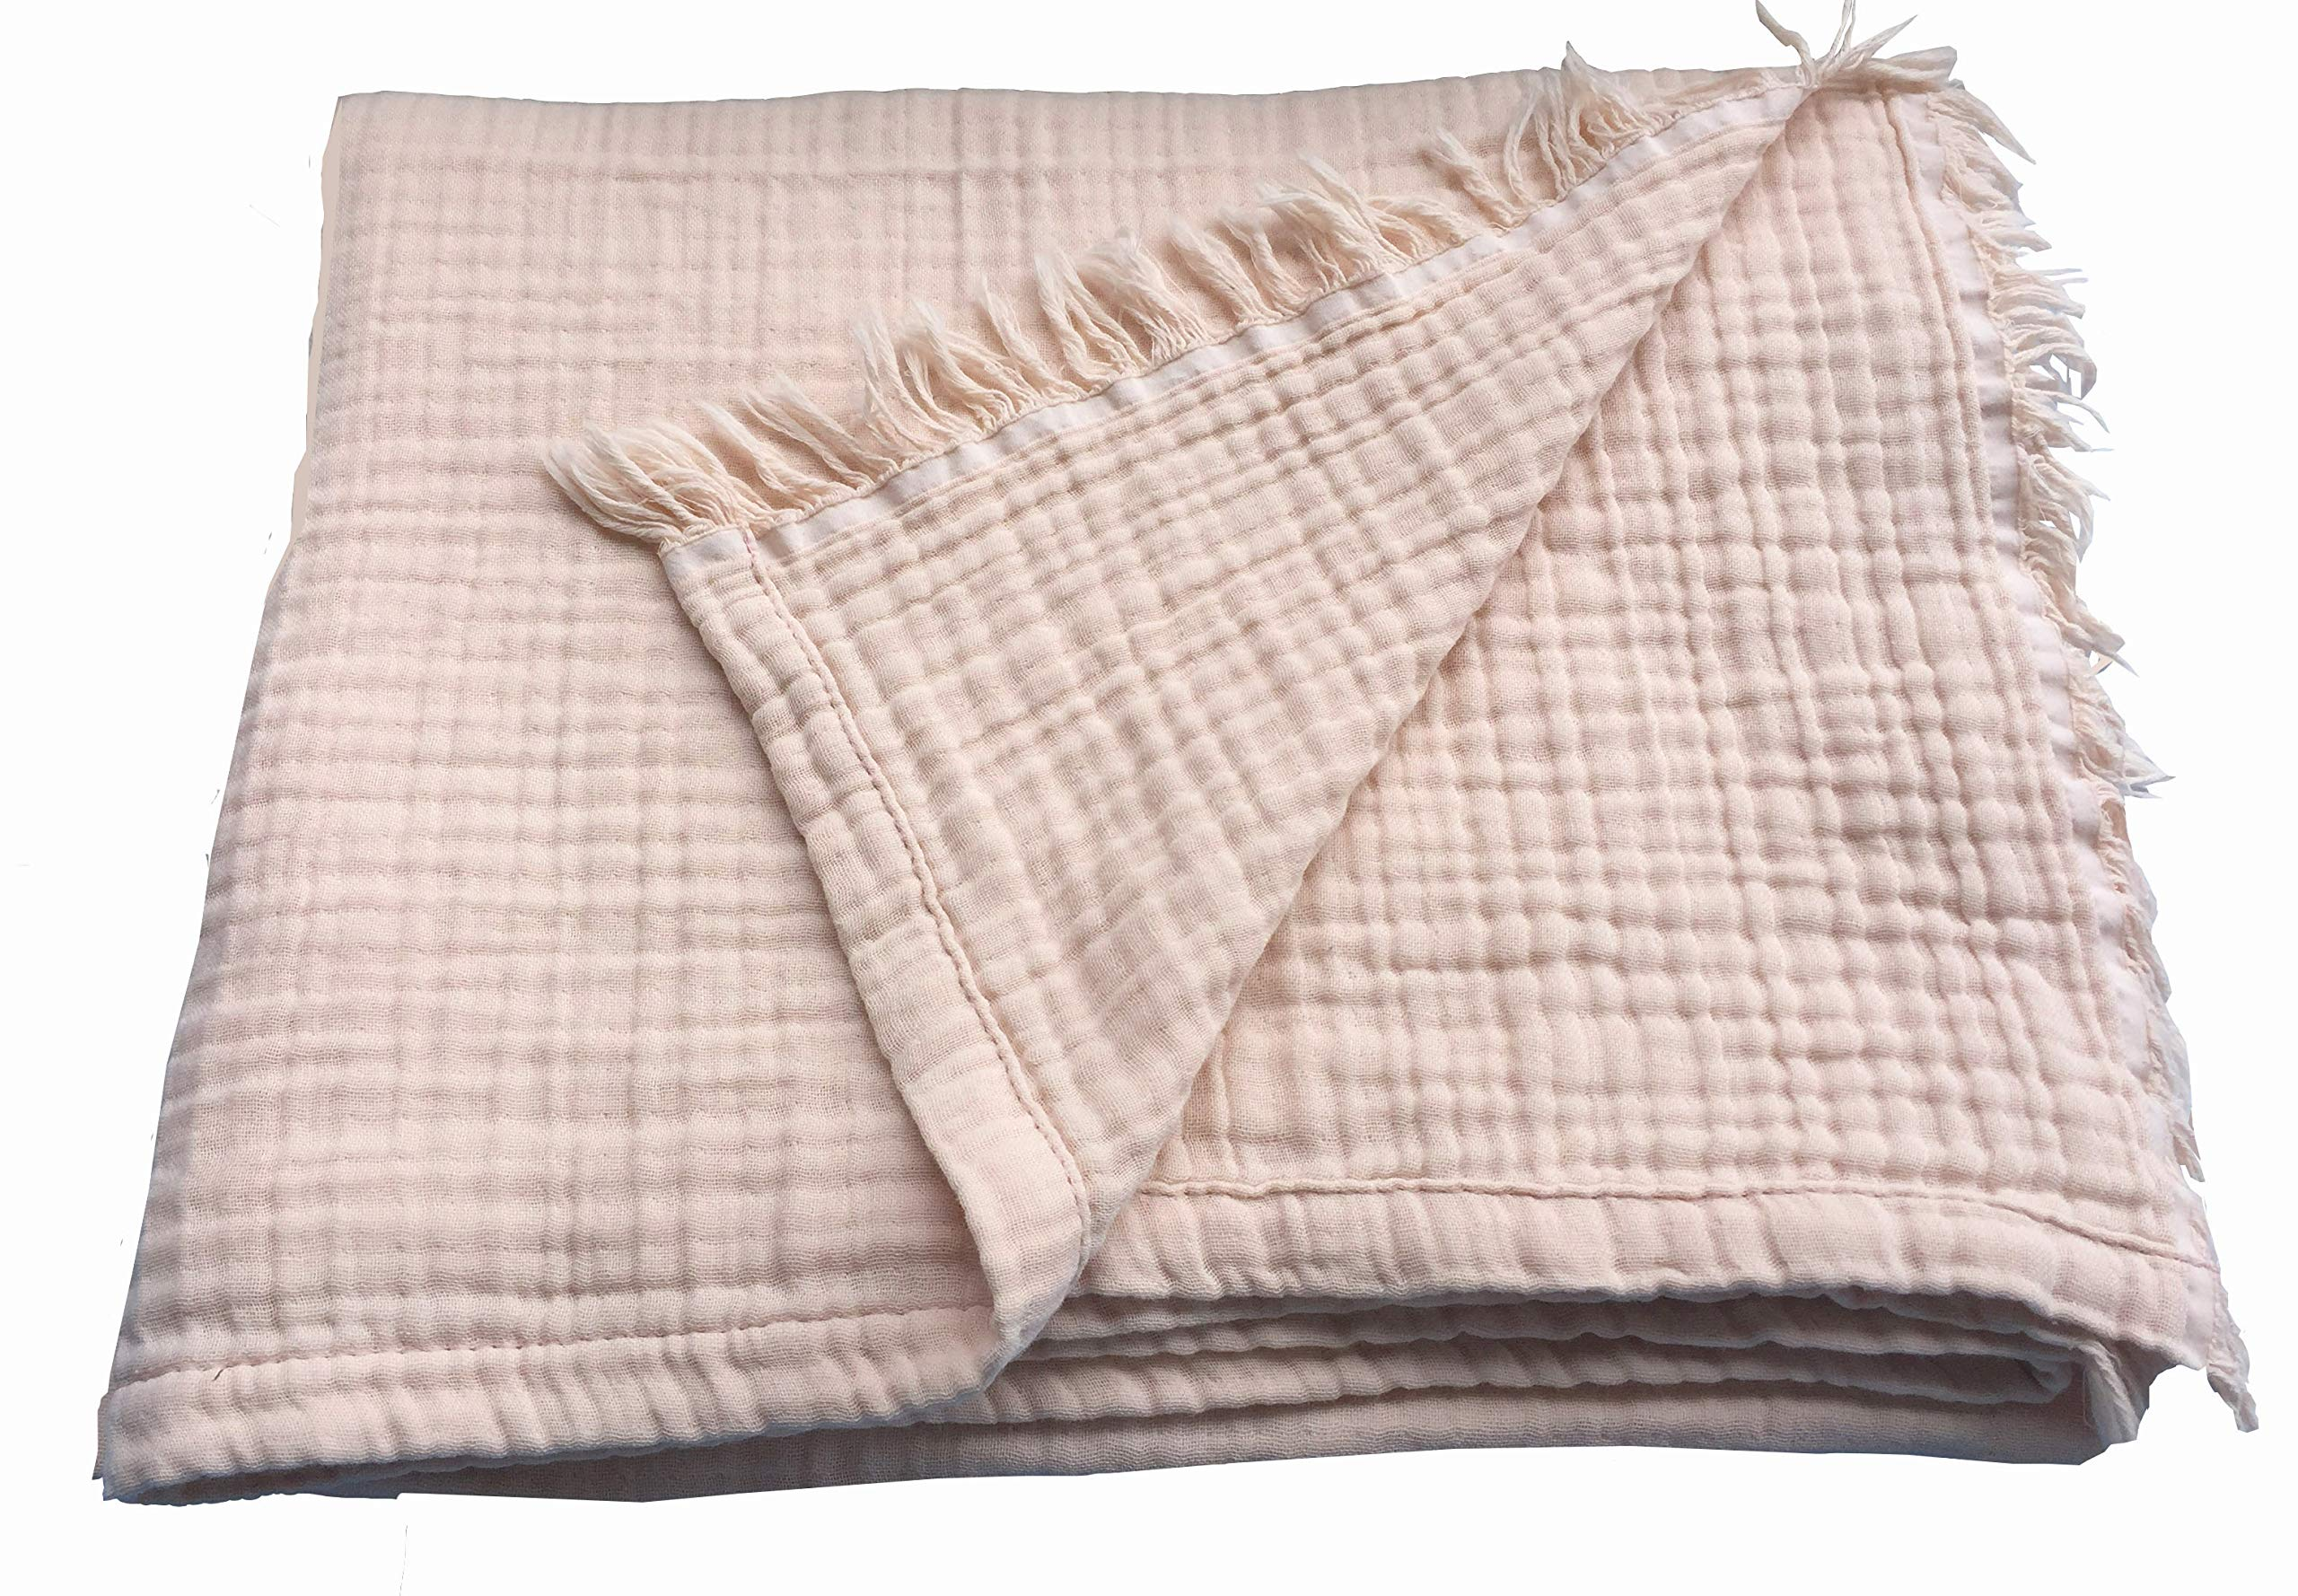 Pre-Washed 100% Cotton Muslin Throw Blanket with Fringe, 50''x70'', Perfect for Bed, Sofa, Reading, Watching TV, Napping, Picnics, at the Beach, Breathable 100% Cotton Muslin, Oeko-Tex Certified (Pink)